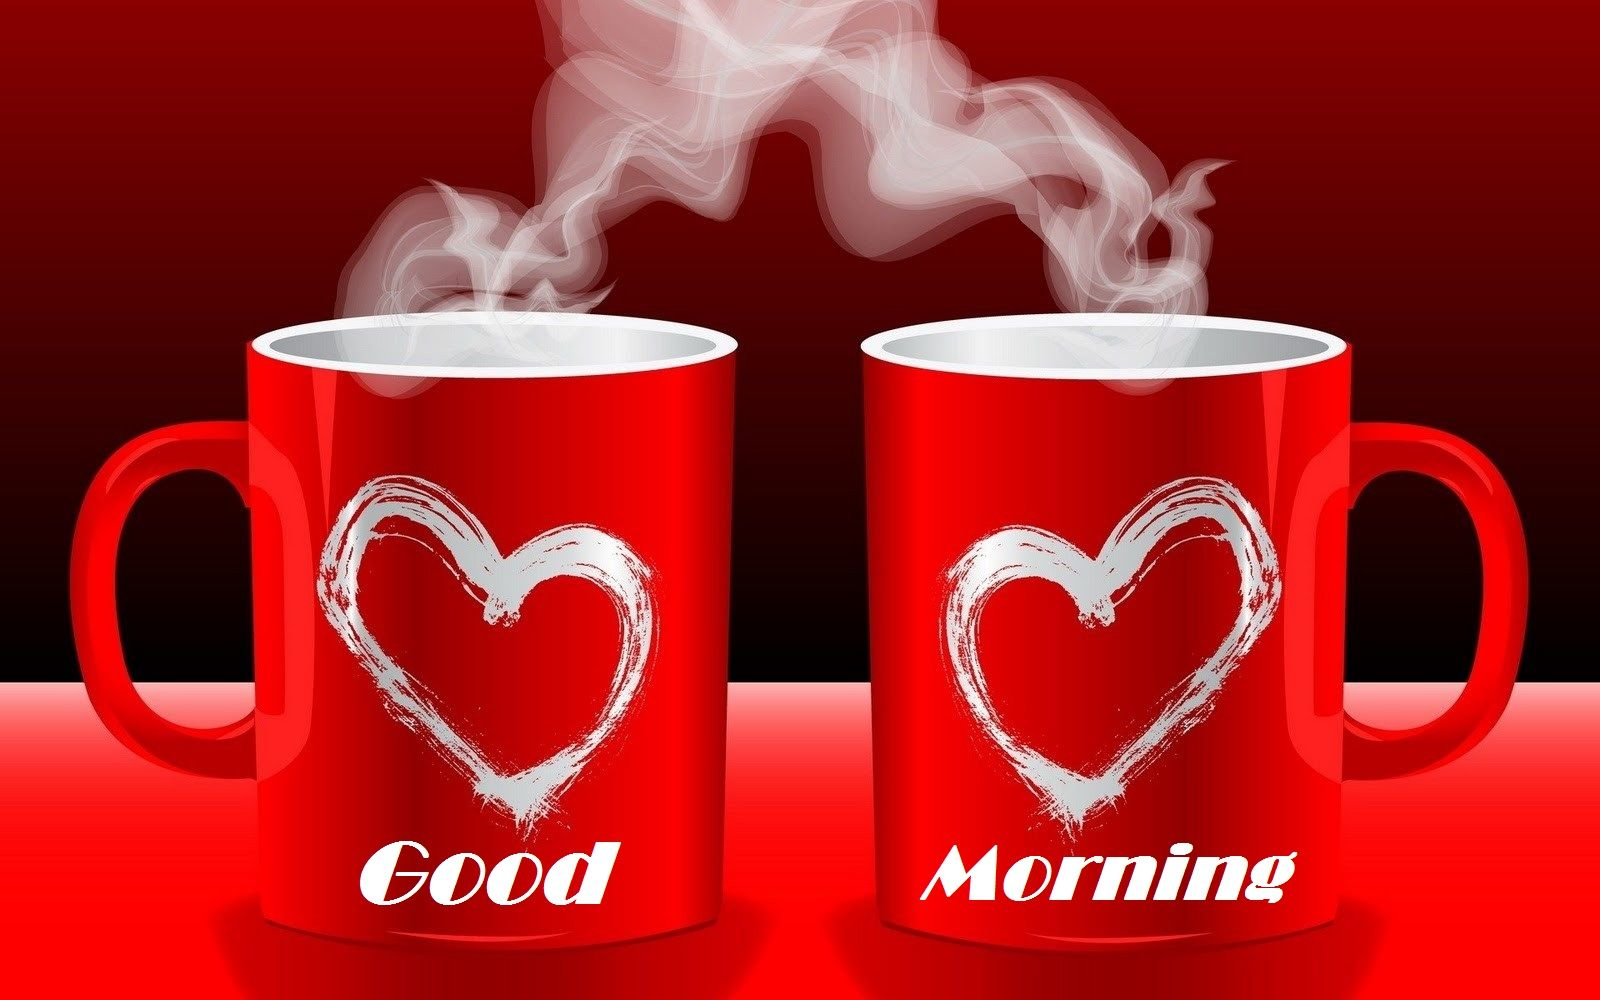 Cute good morning wishes messages wallpaper good morning pinterest cute good morning wishes messages wallpaper kristyandbryce Gallery